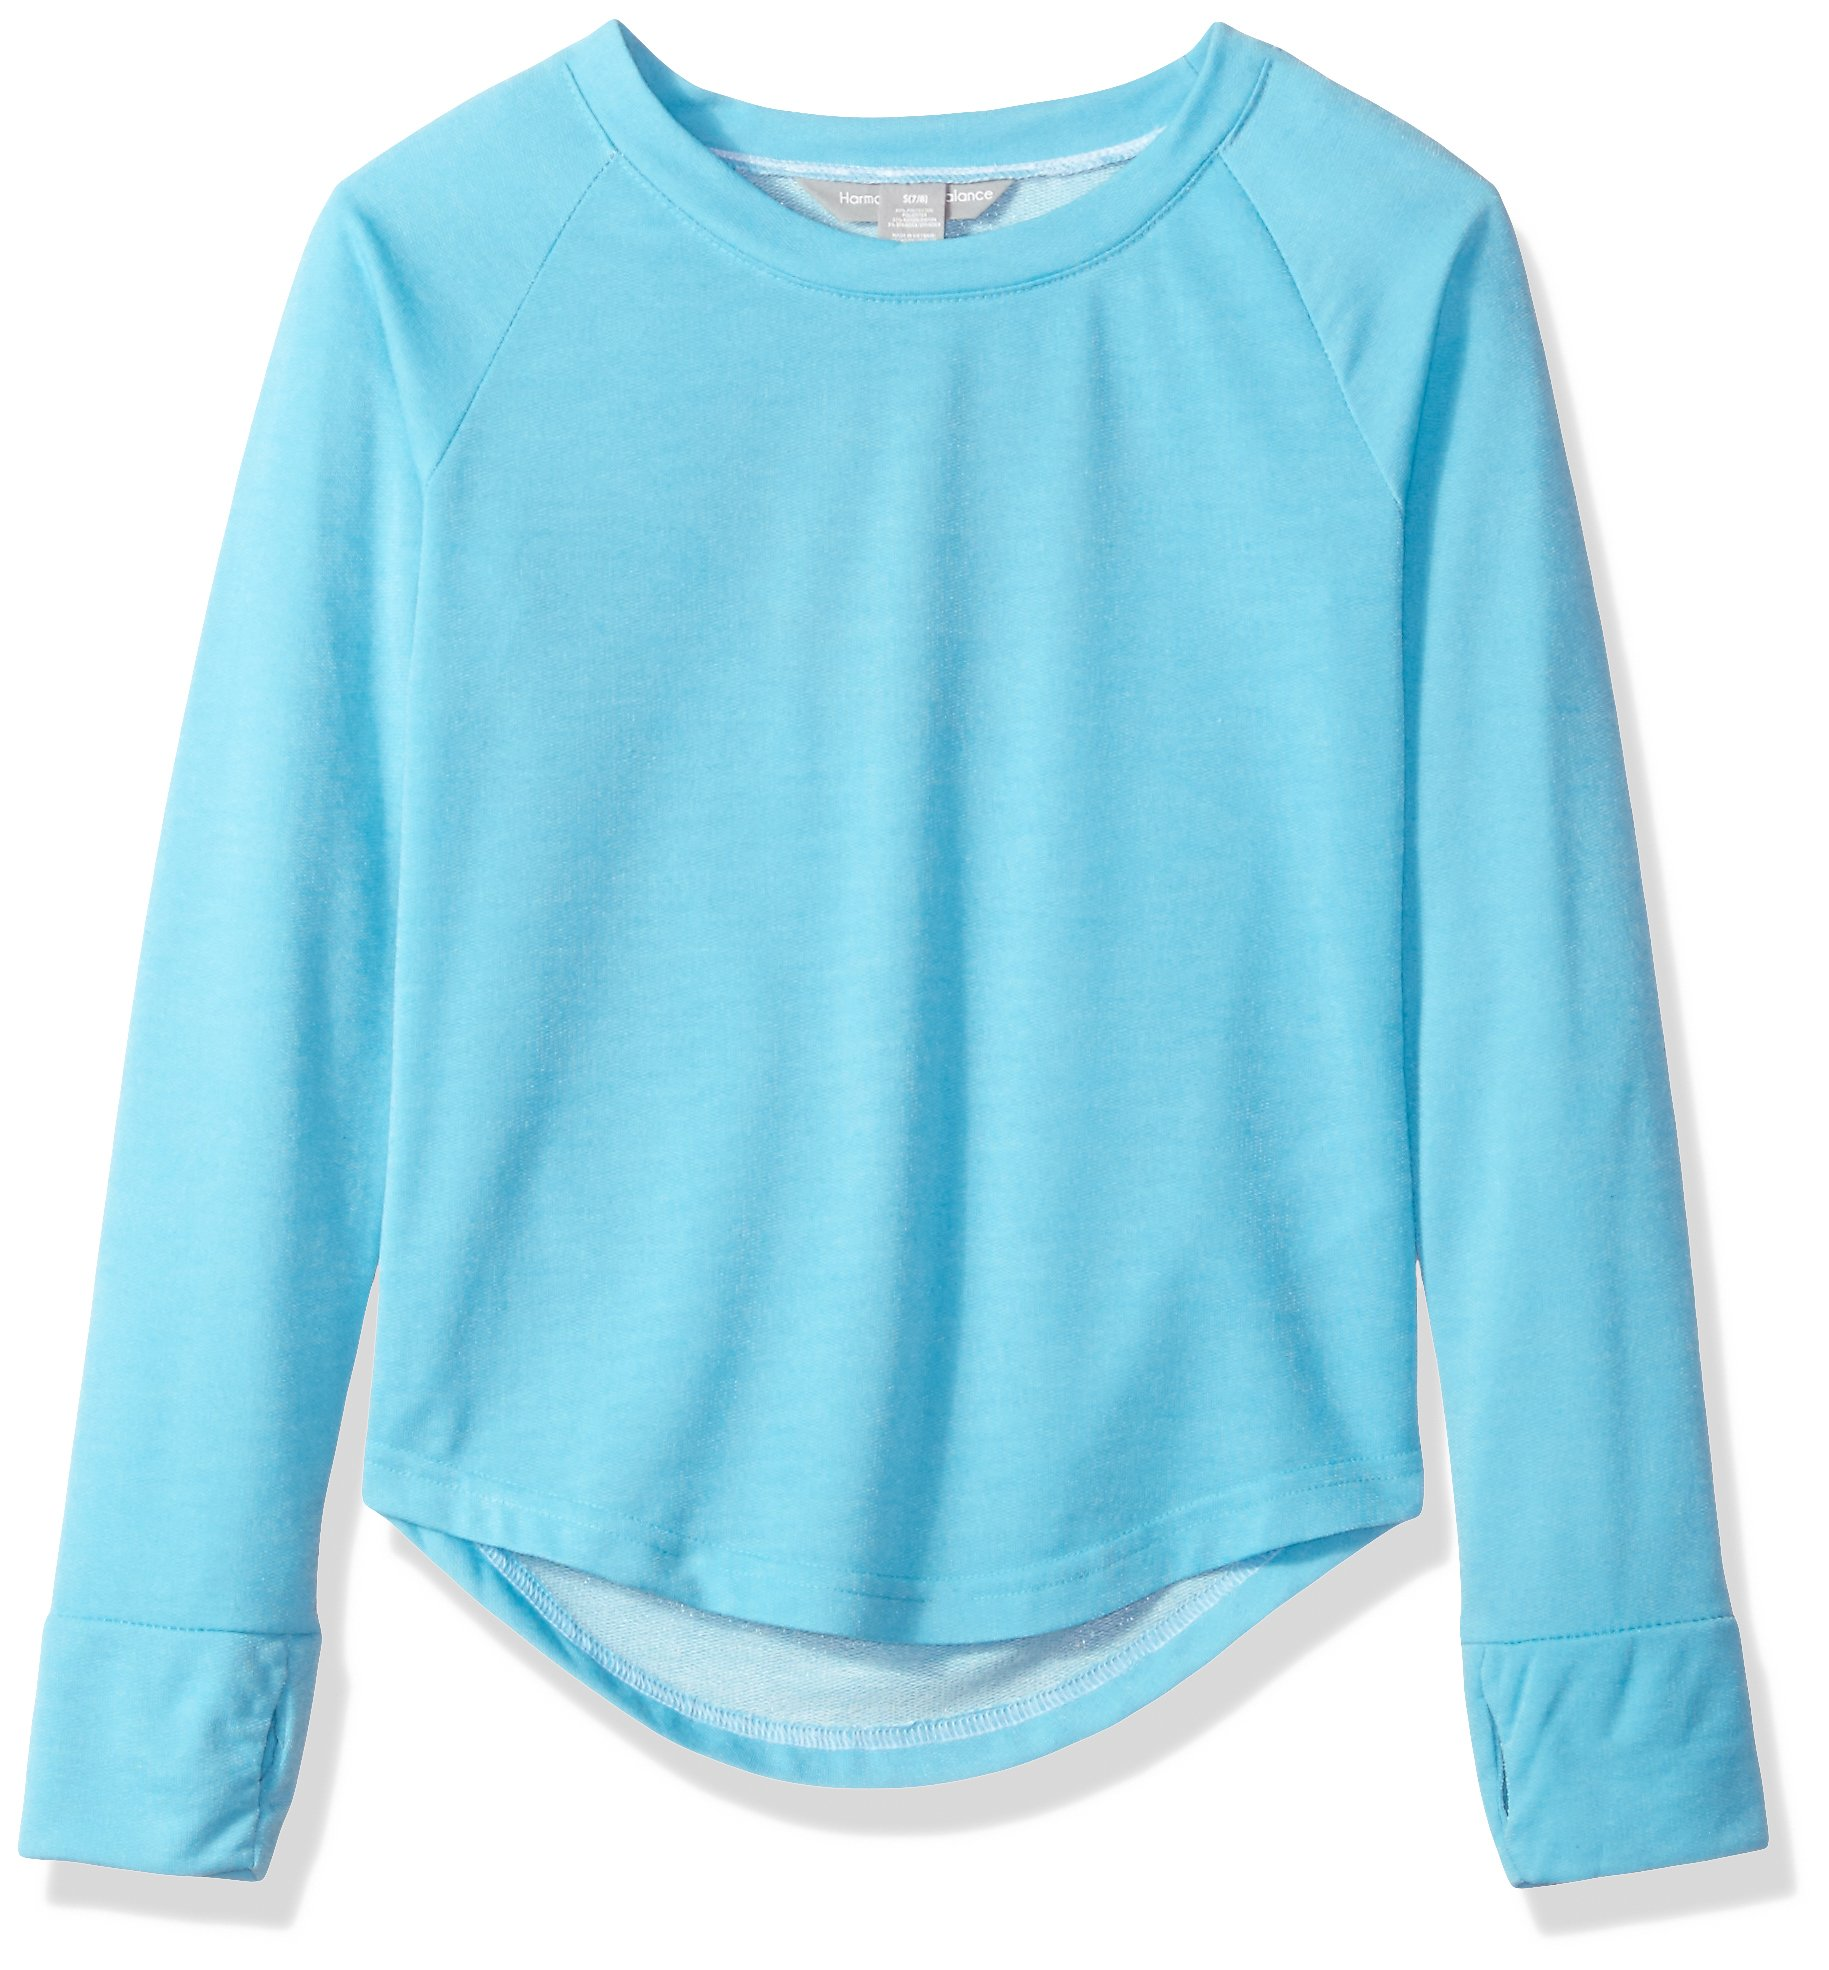 Harmony and Balance Big Girls' French Terry Top, Blue Atoll, 7/8